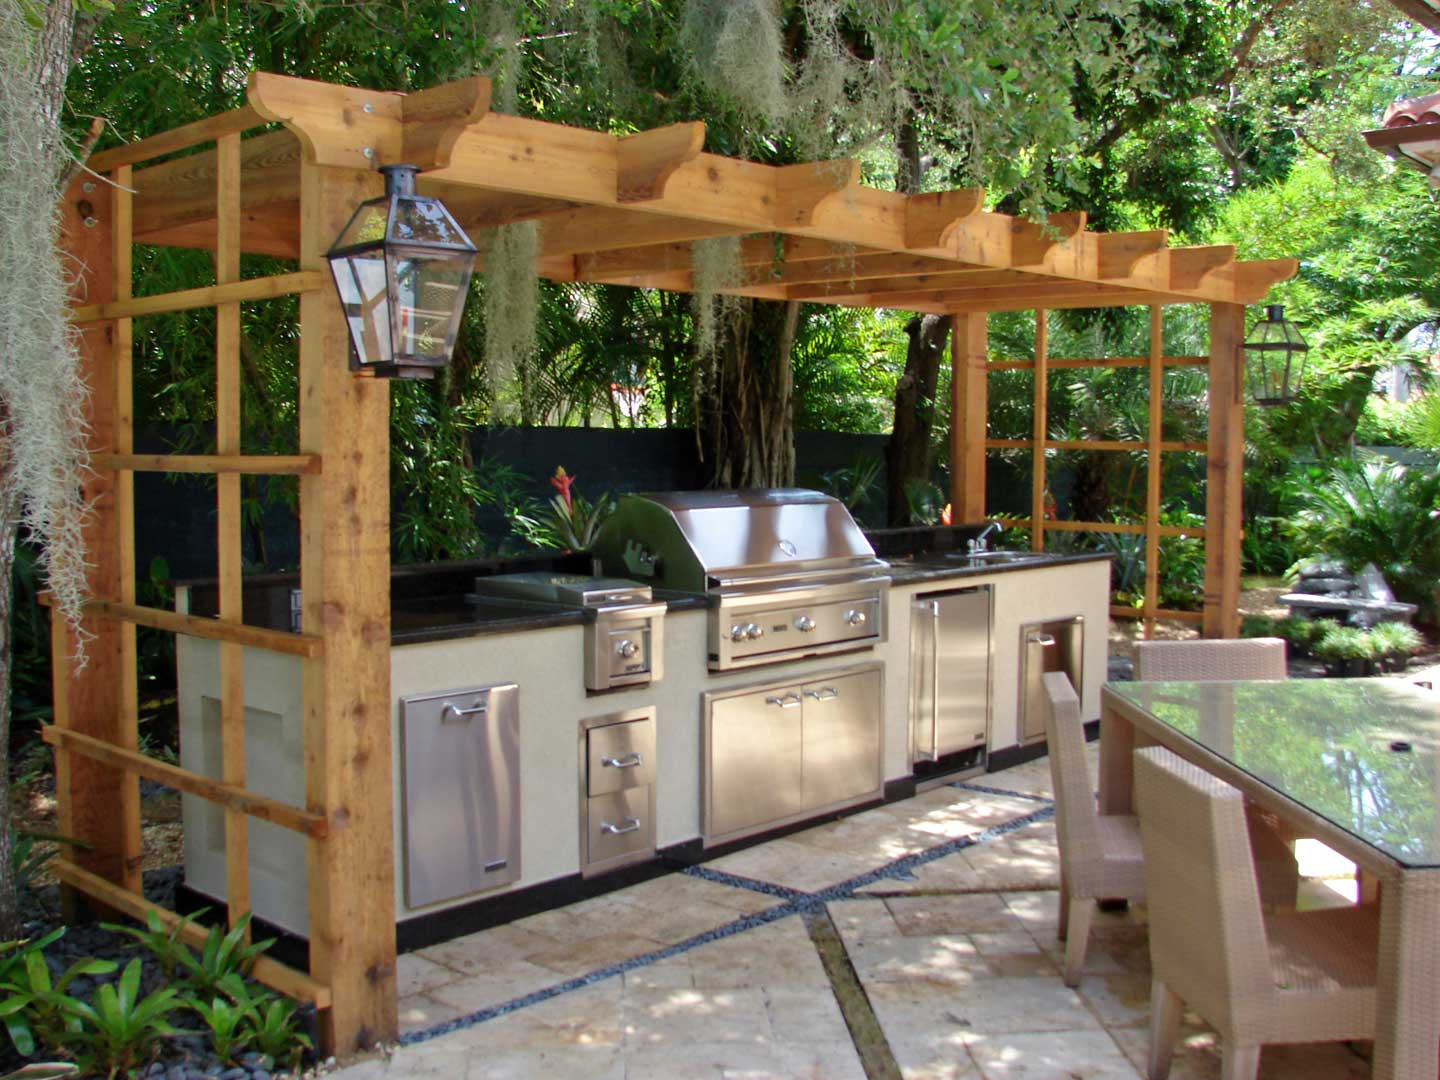 Making An Outdoor Kitchen Dressed To Grill Winding Down The Summer With My Personal Favs